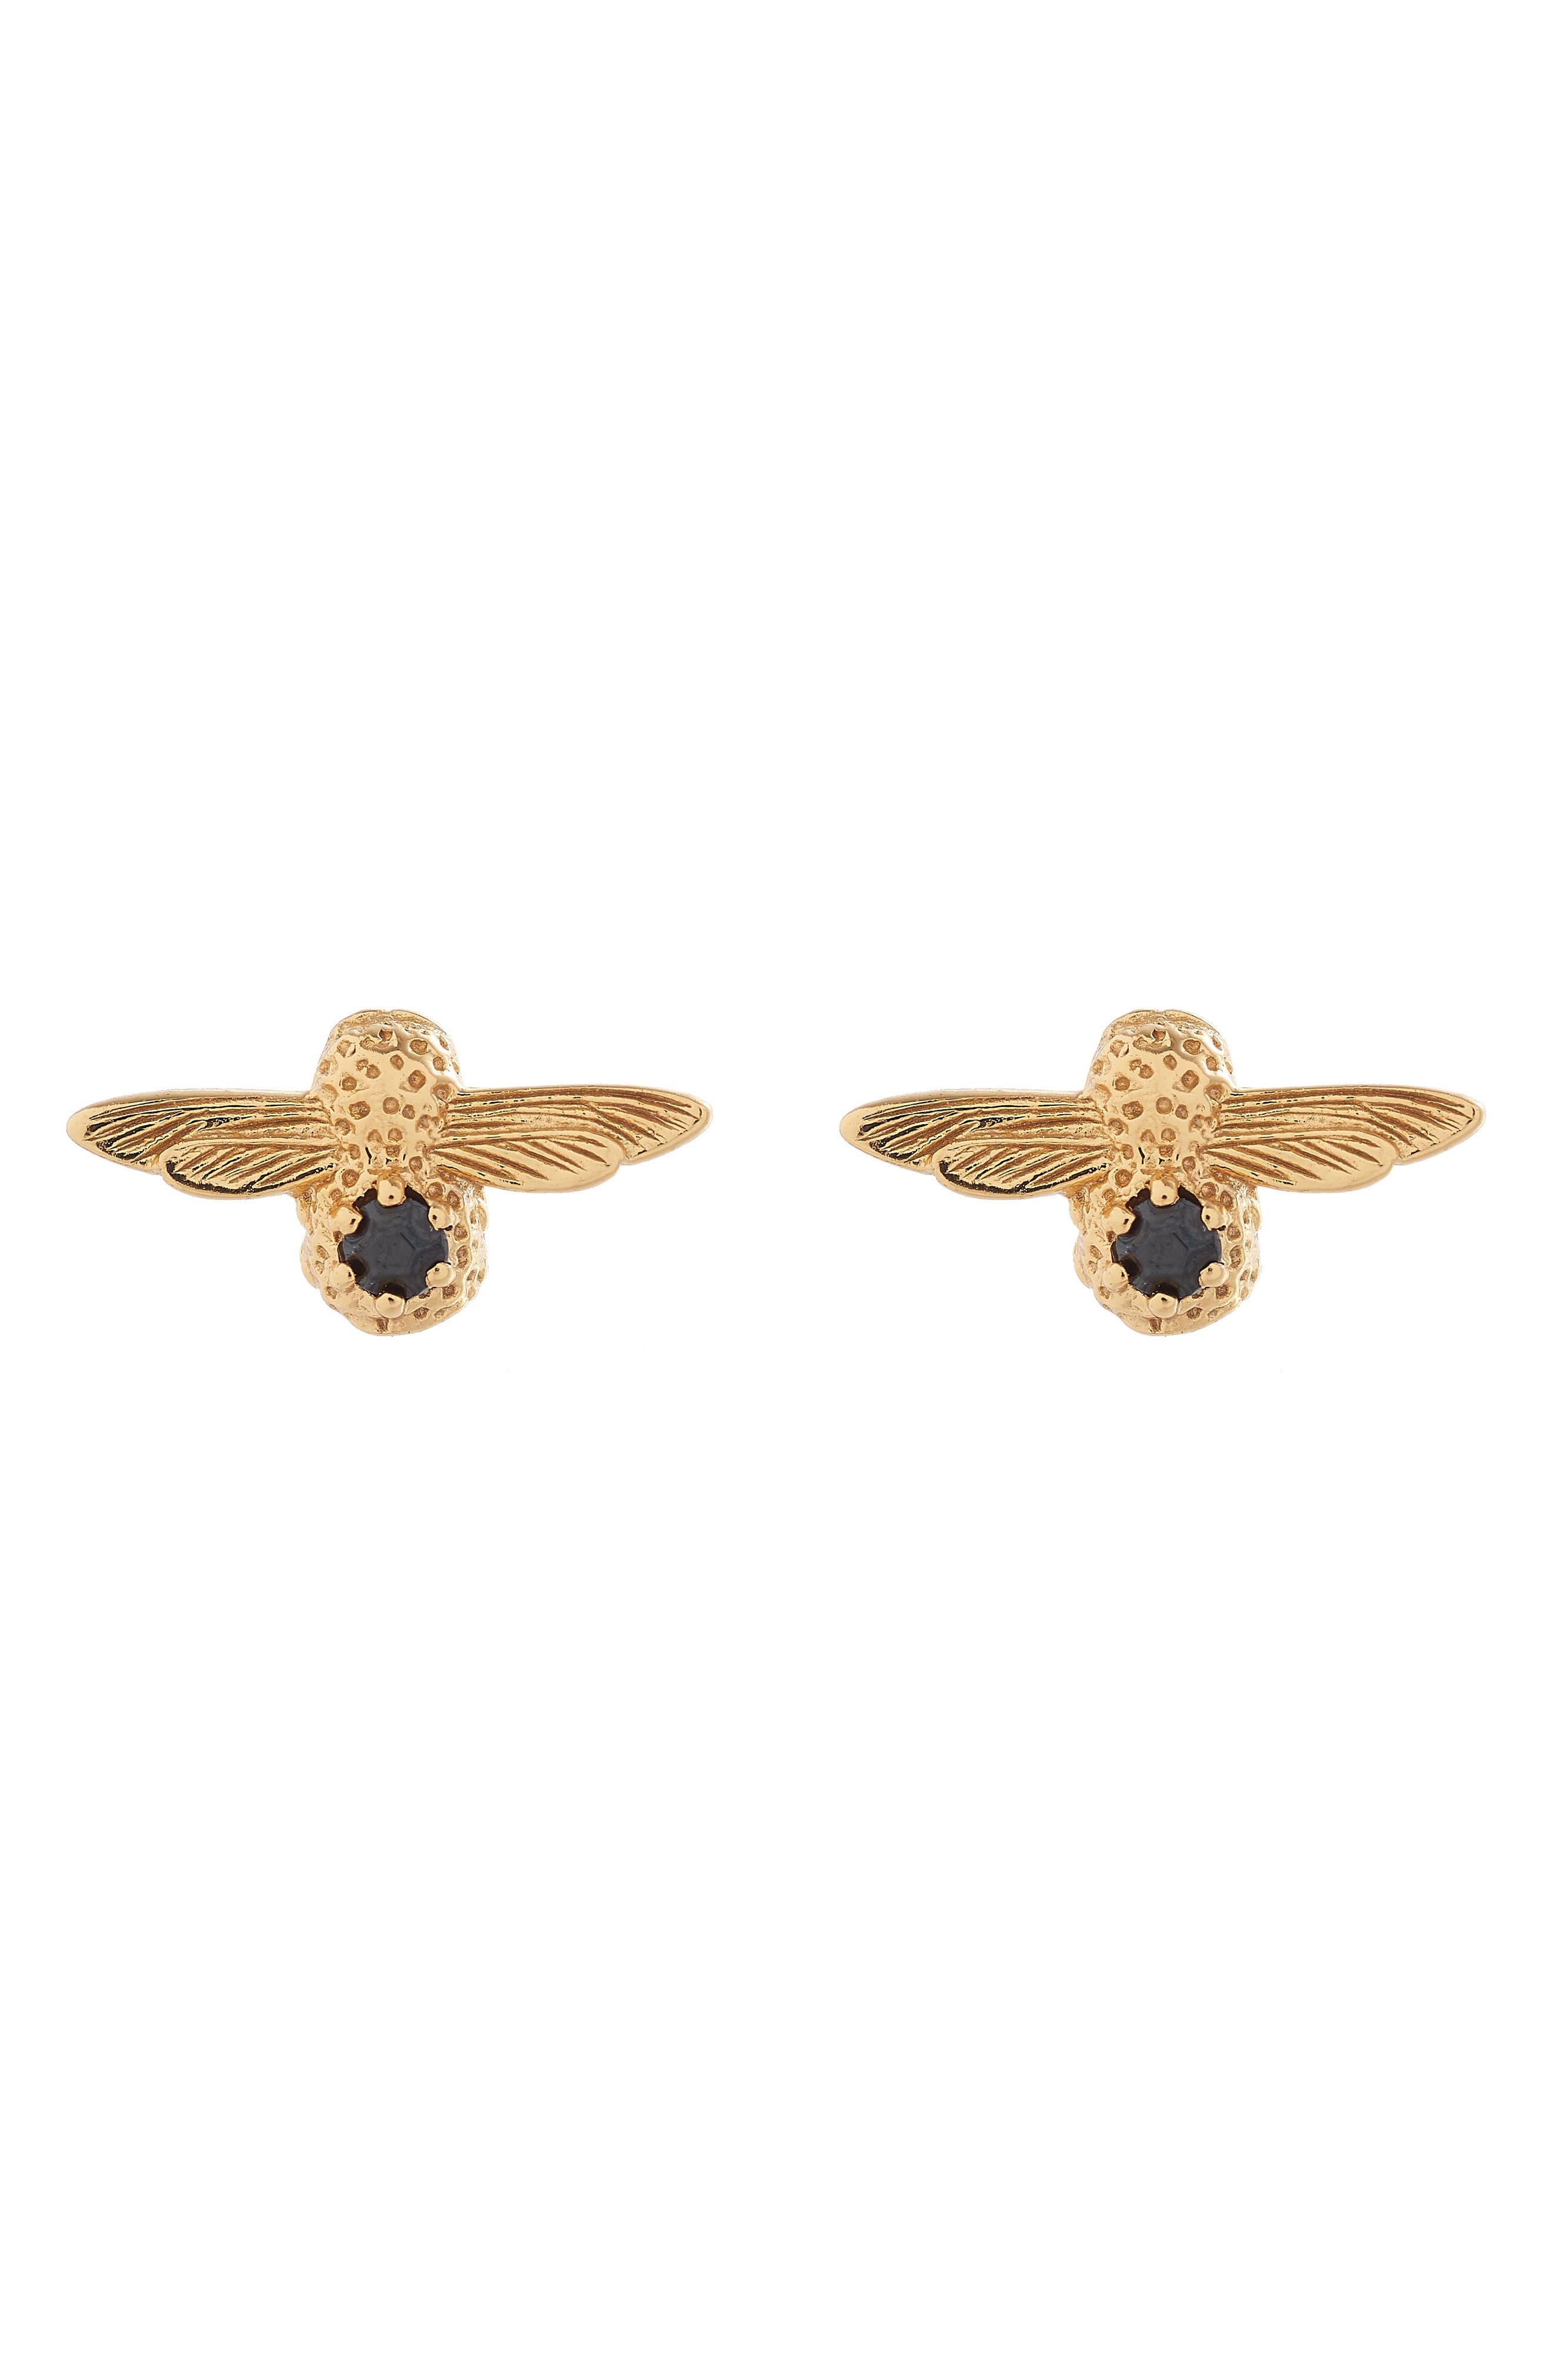 3D Bejeweled Bee Stud Earrings,                         Main,                         color, Two Tone- Gold / Black Onyx